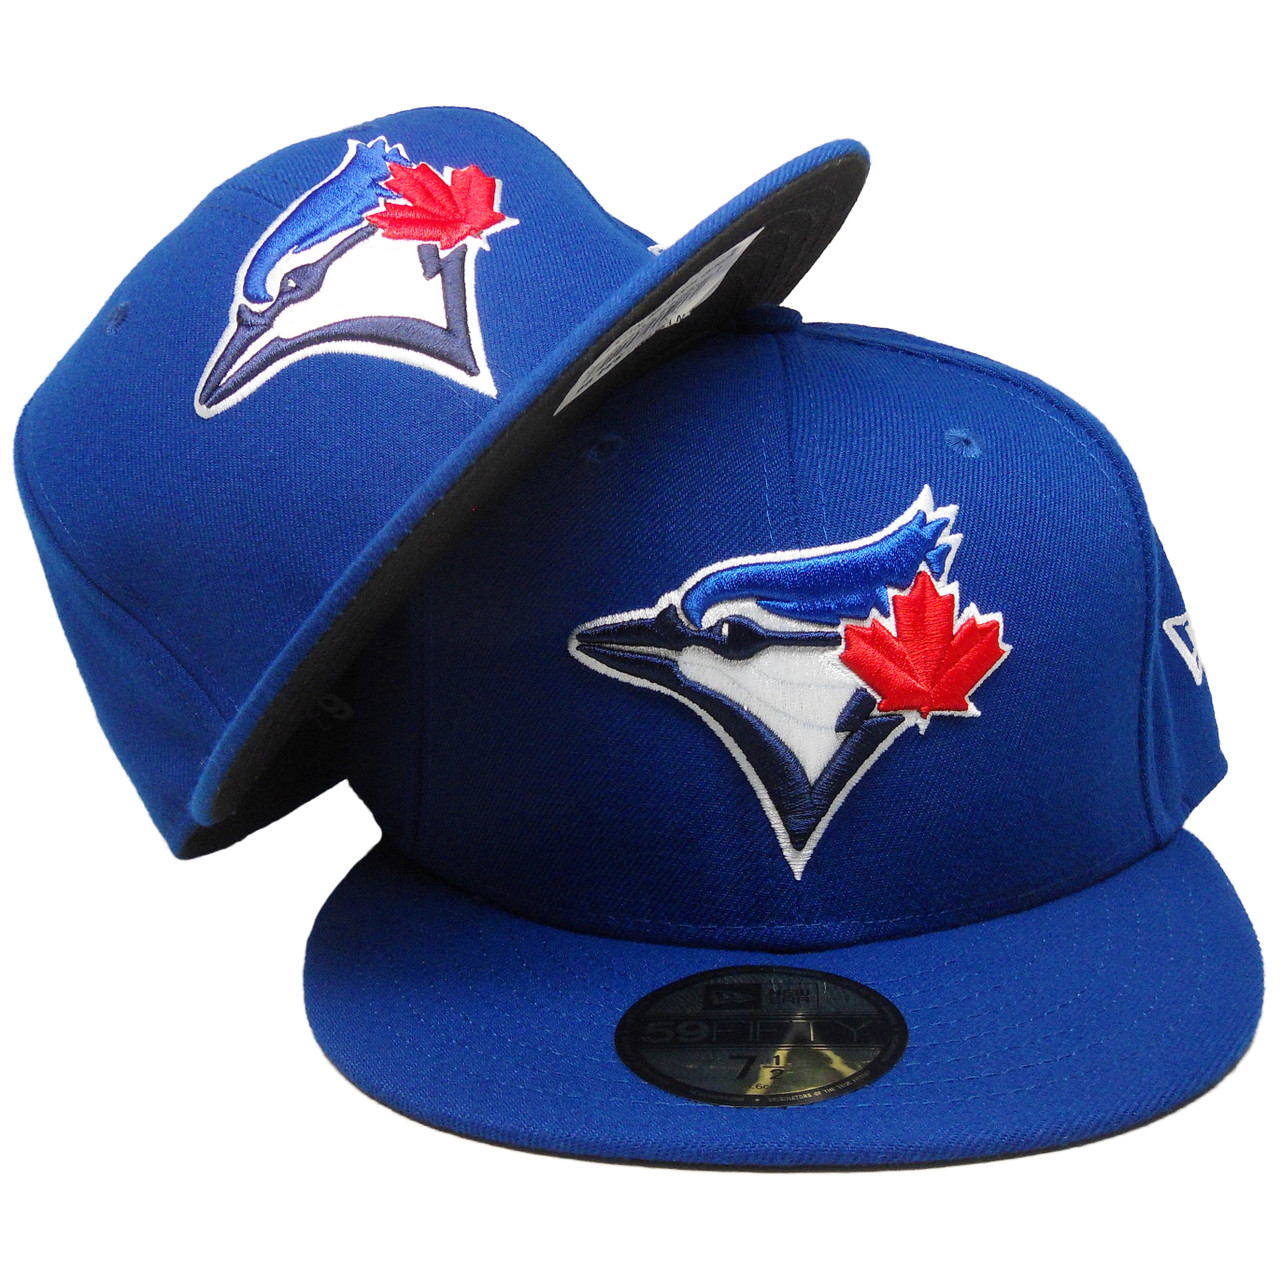 7d5ae6b4 Toronto Blue Jays New Era Onfield Official Fitted Hat - Bright Royal,  White, Red. Larger / More Photos